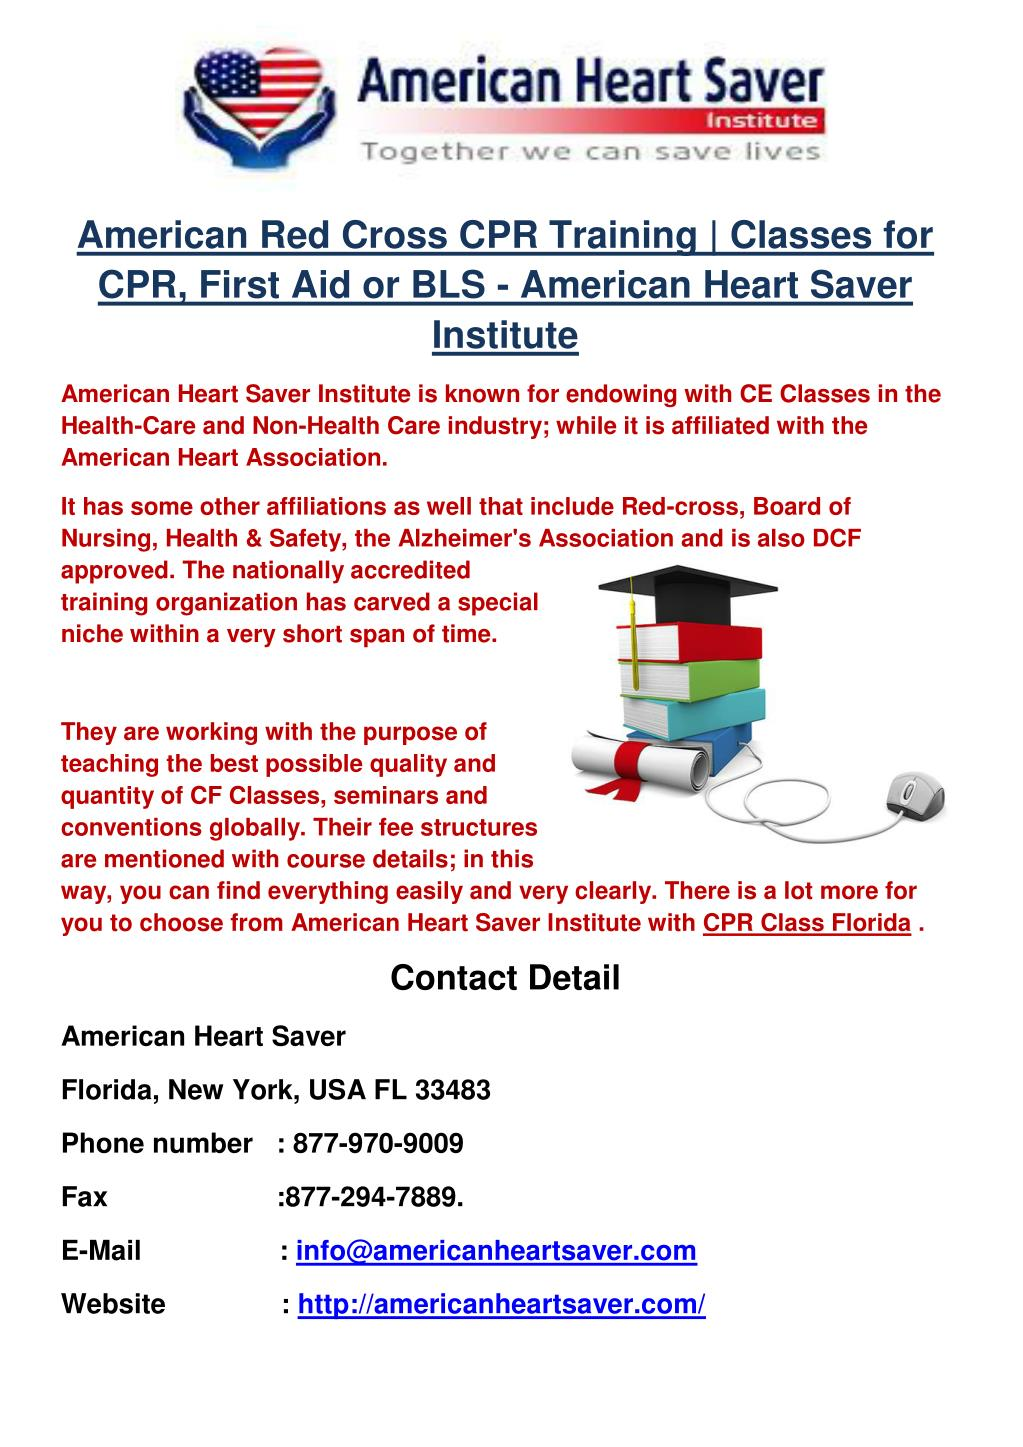 Ppt American Red Cross Cpr Training Classes For Cpr First Aid